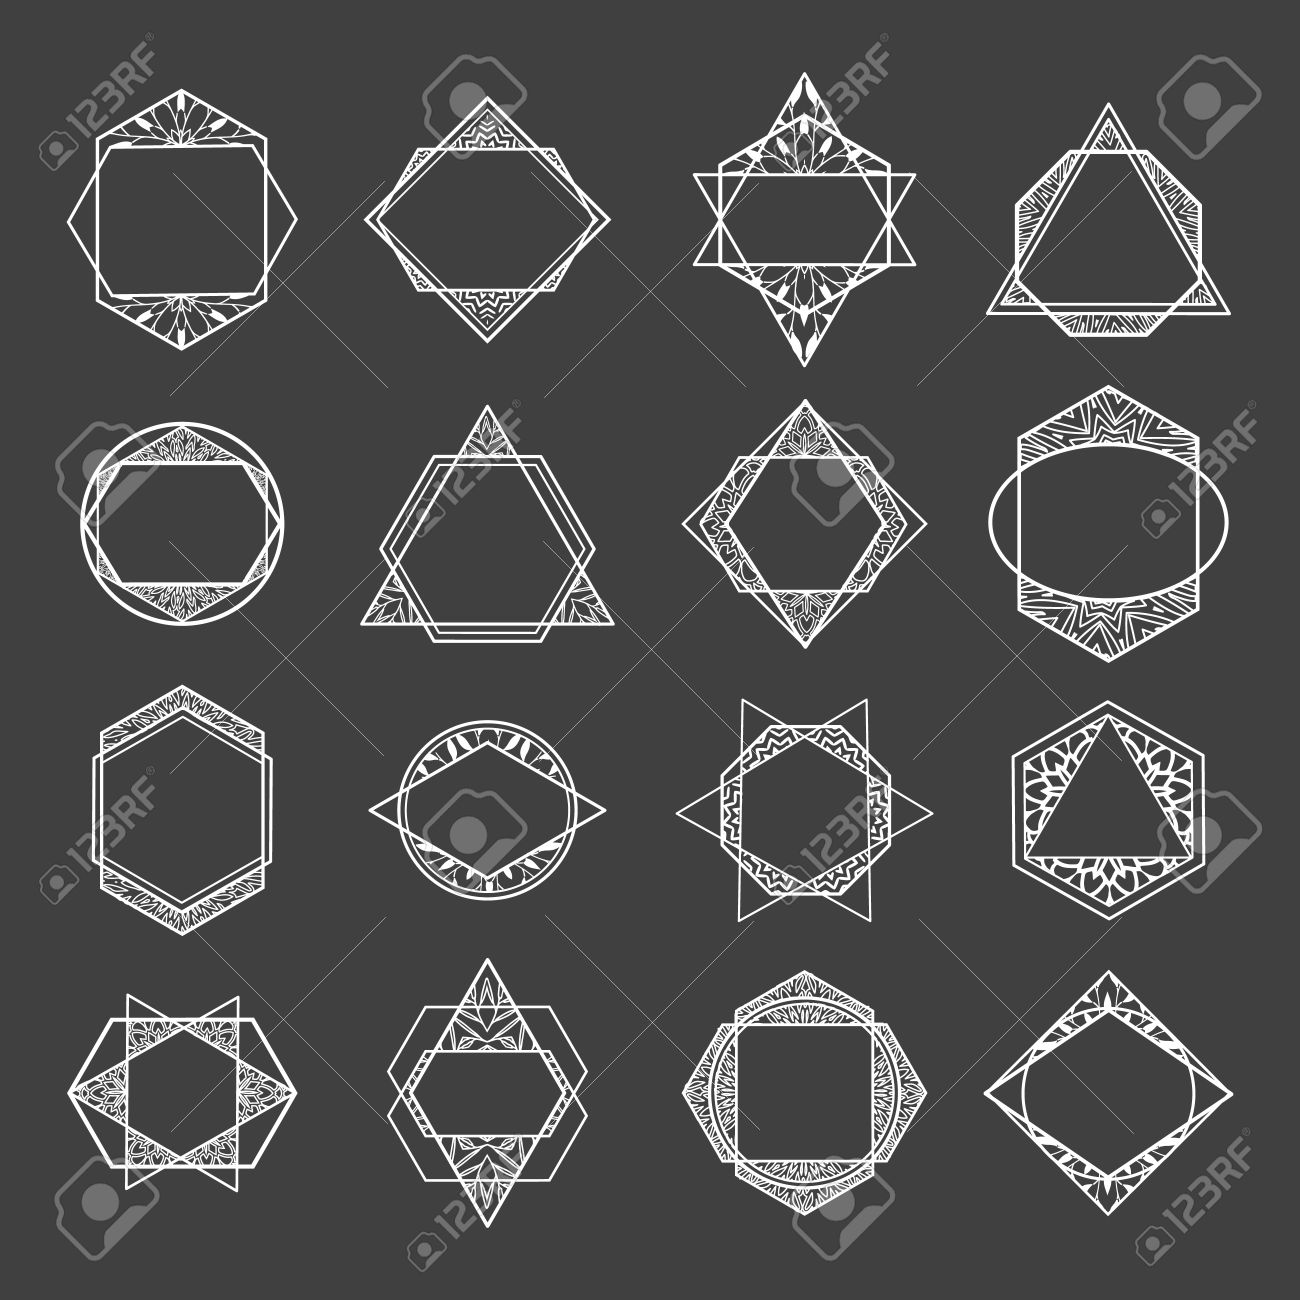 Set Minimalist Abstract Geometric Shapes Symbols And Logos Polygon Frame Badges Icons